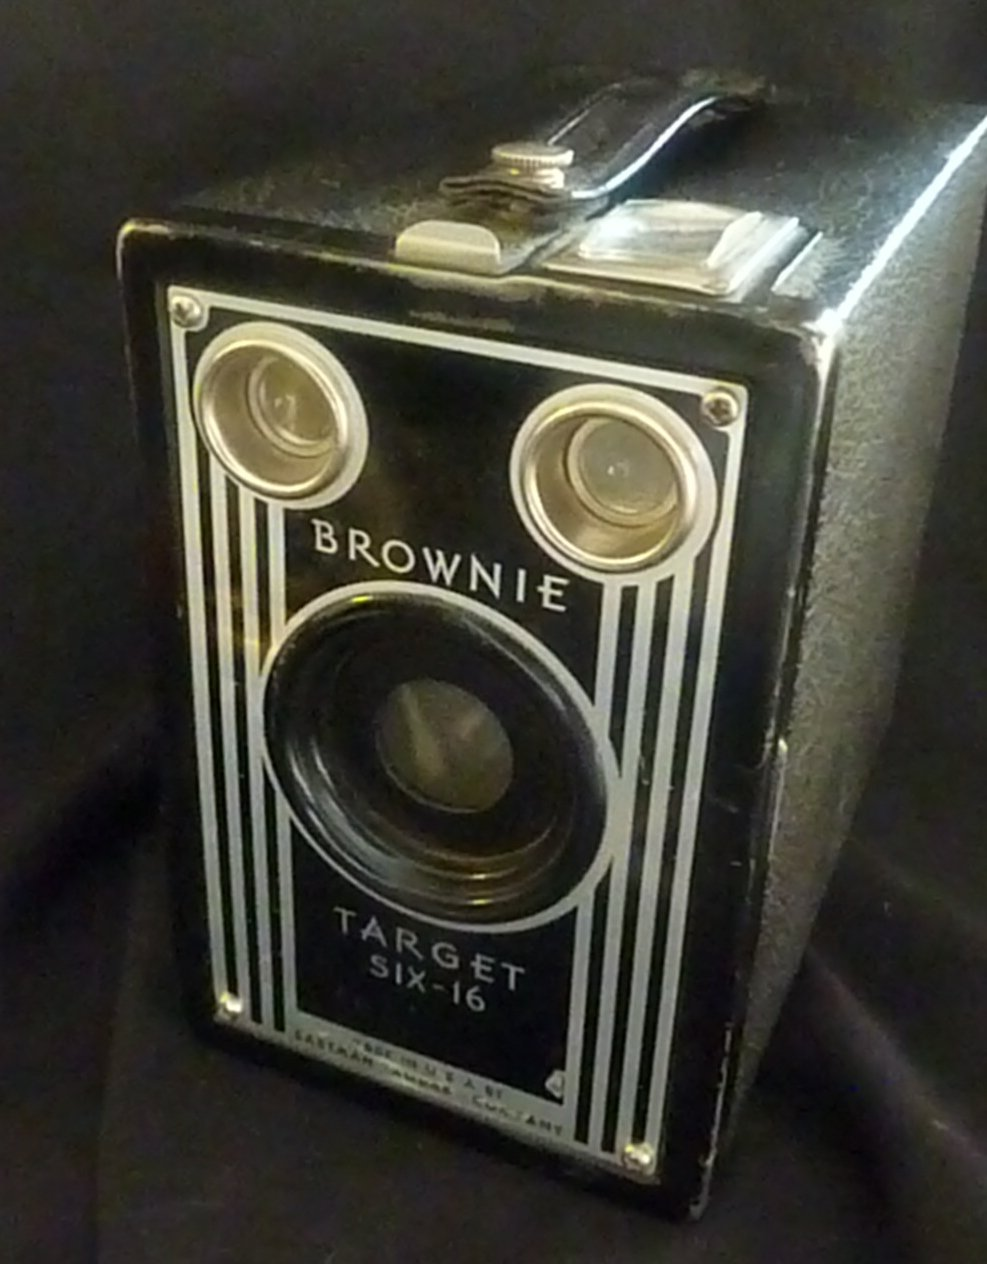 Antique Target BROWNIE Six-16 Camera  (1938-1942) - USA